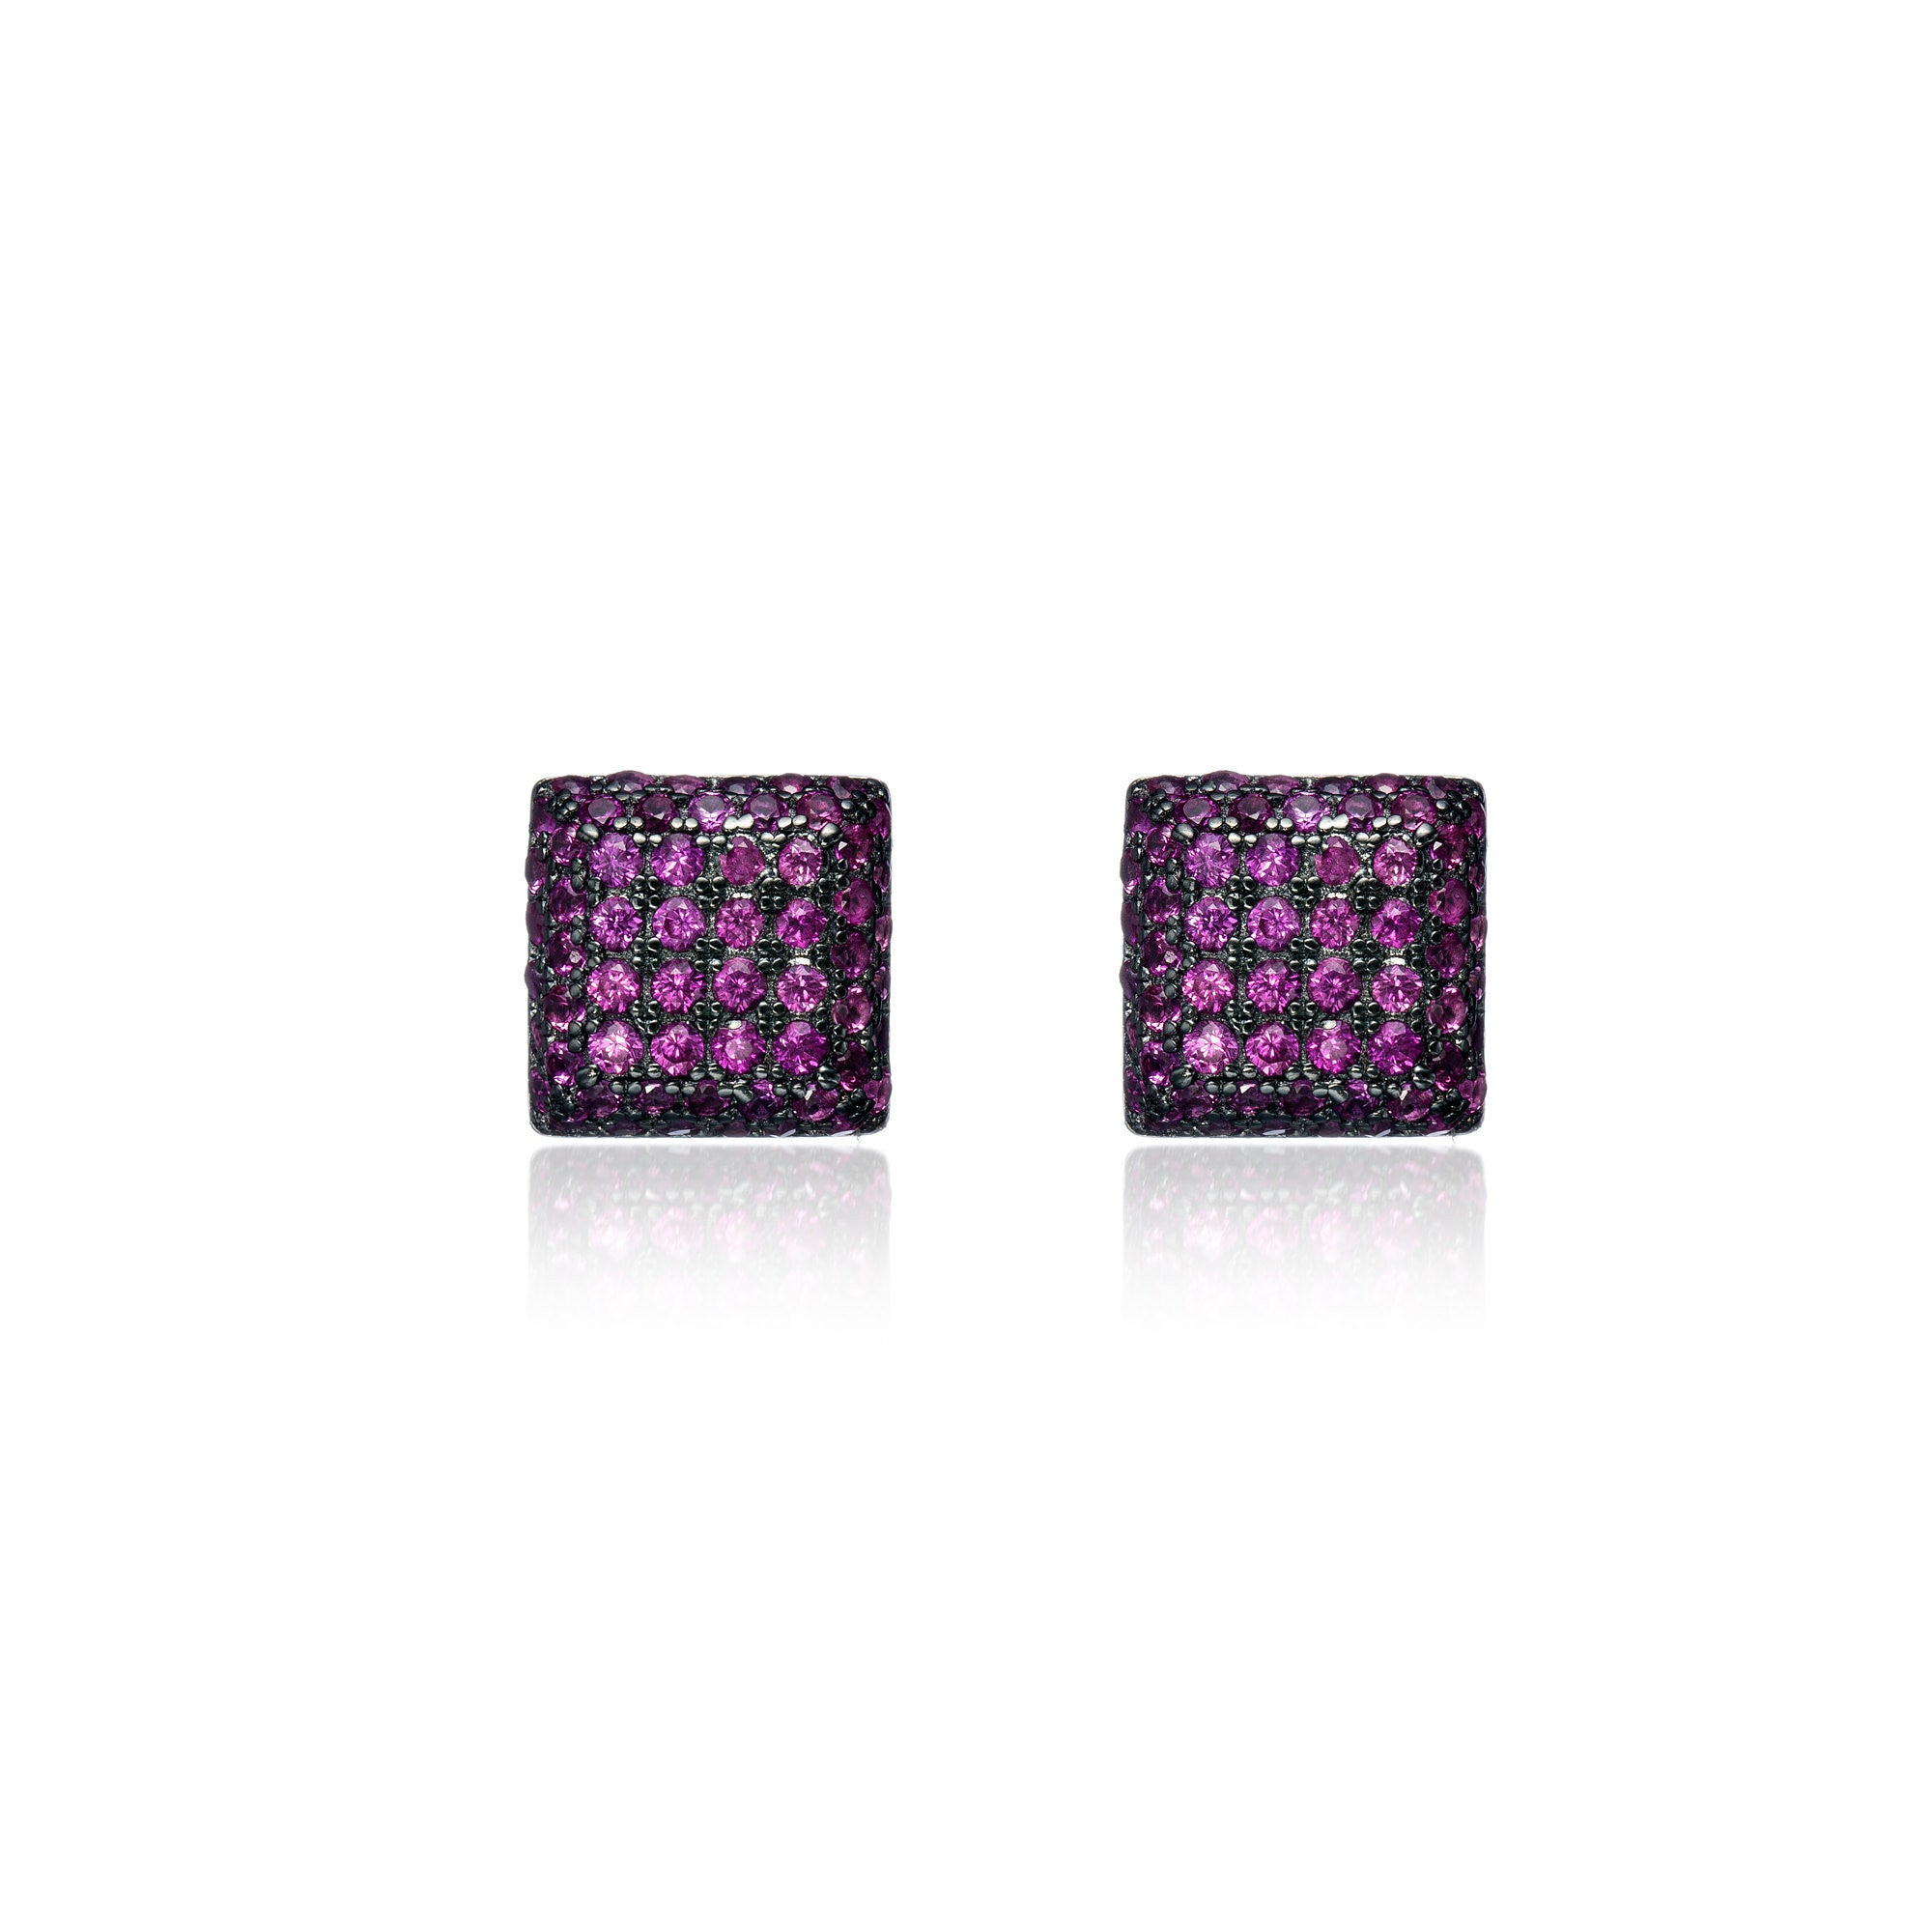 Majestic Ruby Clustered Studs